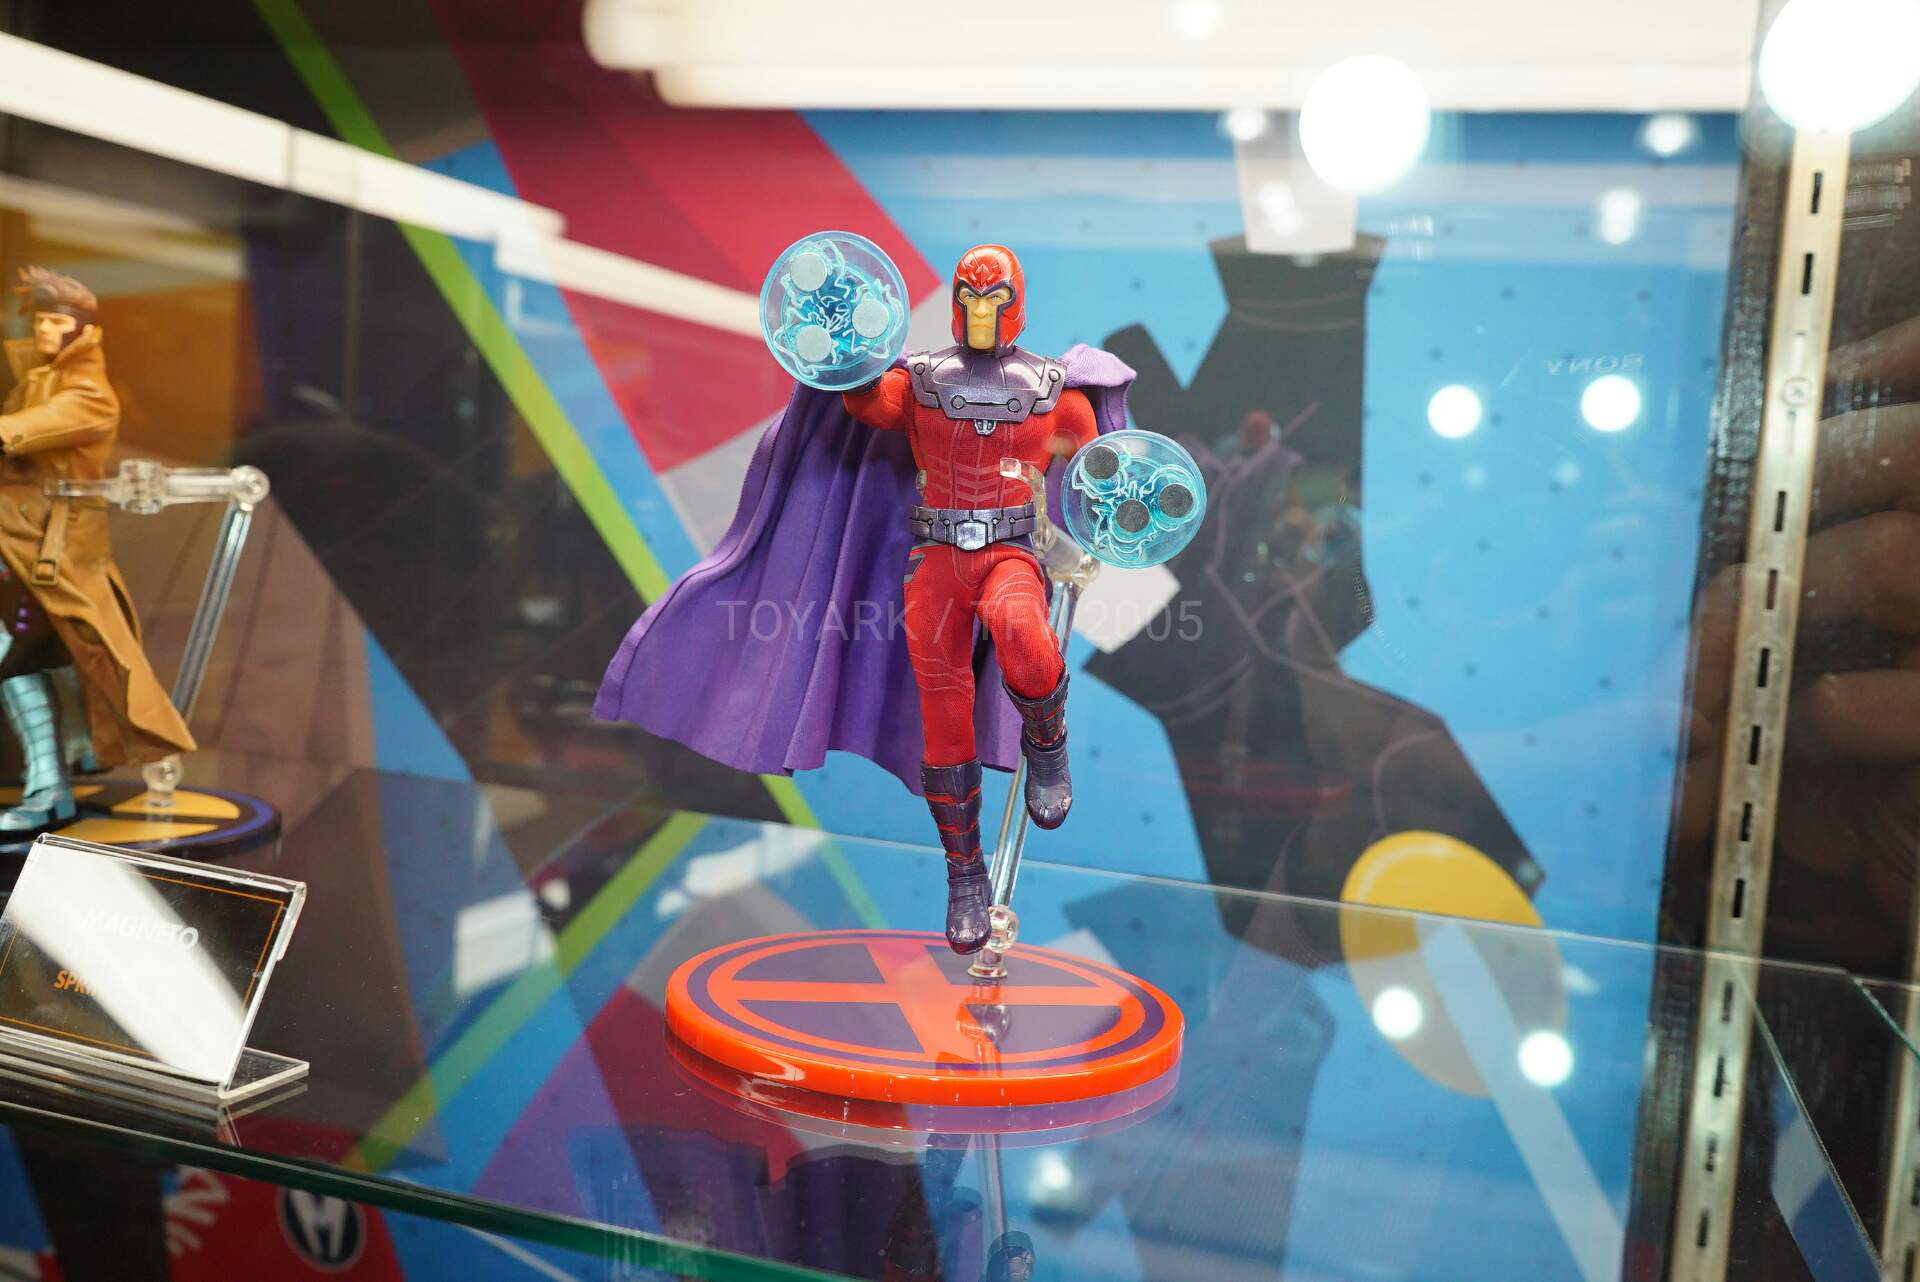 Toy-Fair-2020-Mezco-One12-037.jpg